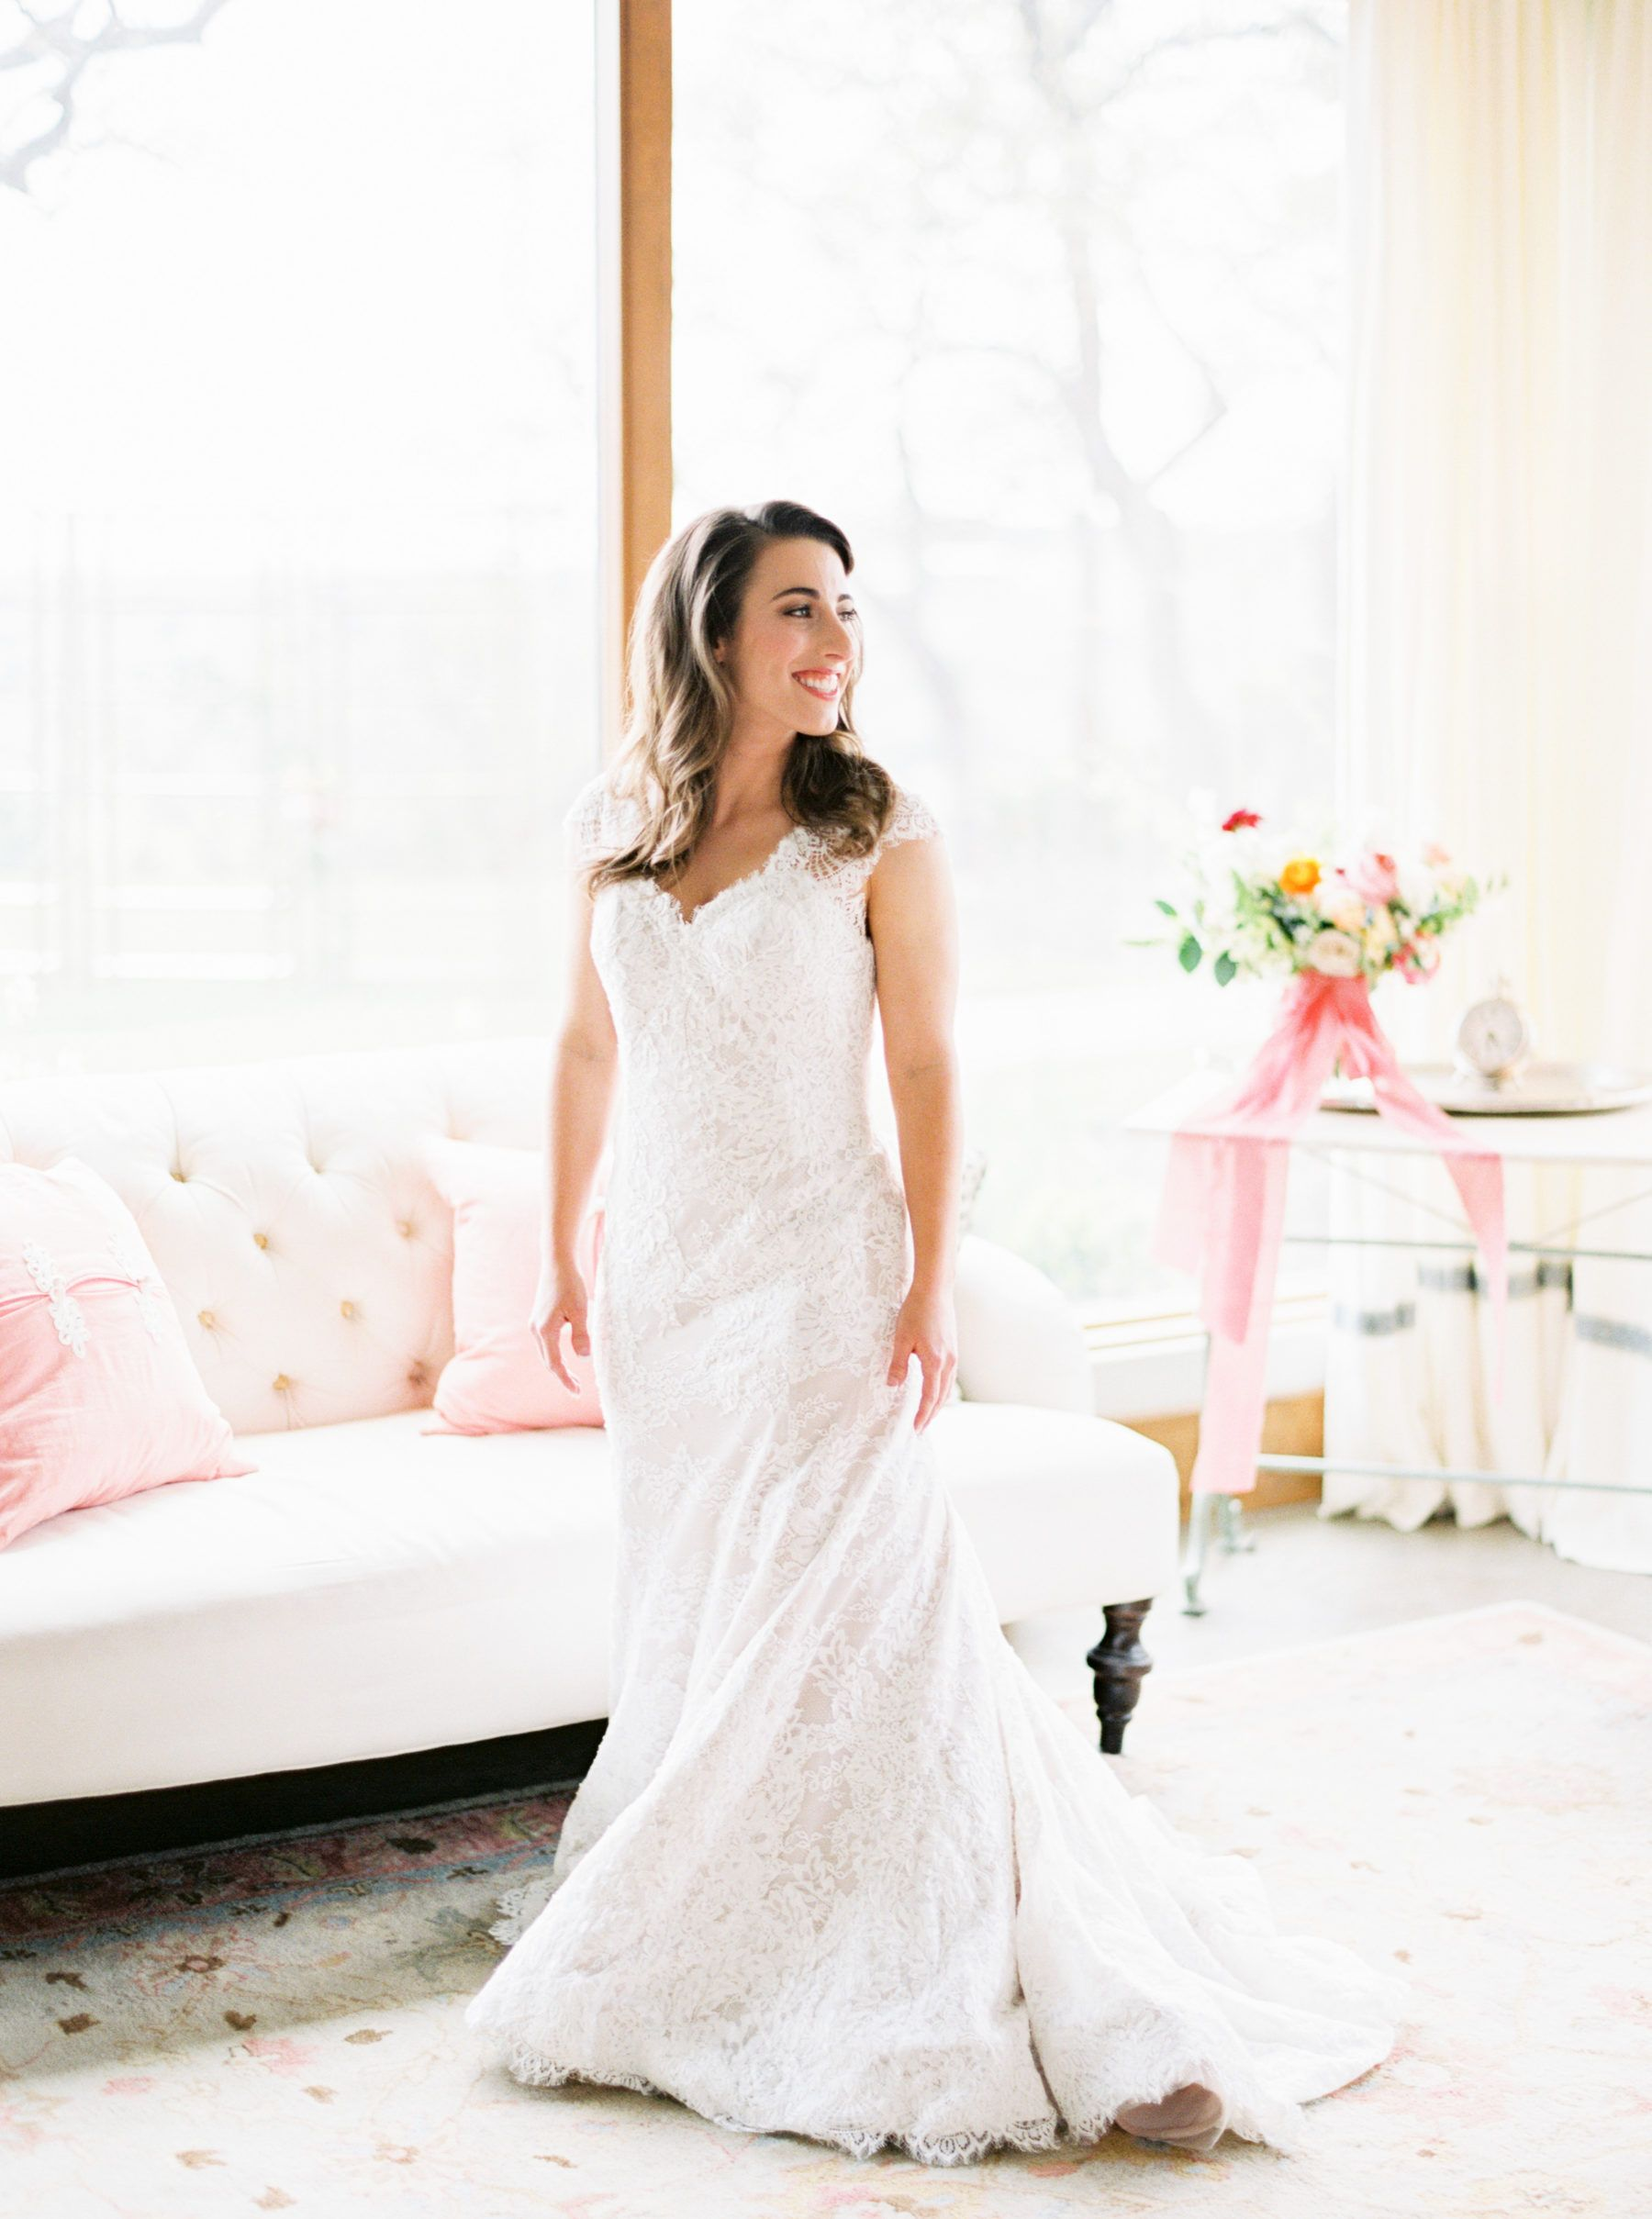 Southern Spring Wedding At Canyonwood Ranch In Austin Texas Wedding Dress With Veil Pretty Bridesmaid Dresses Bridal Beauty